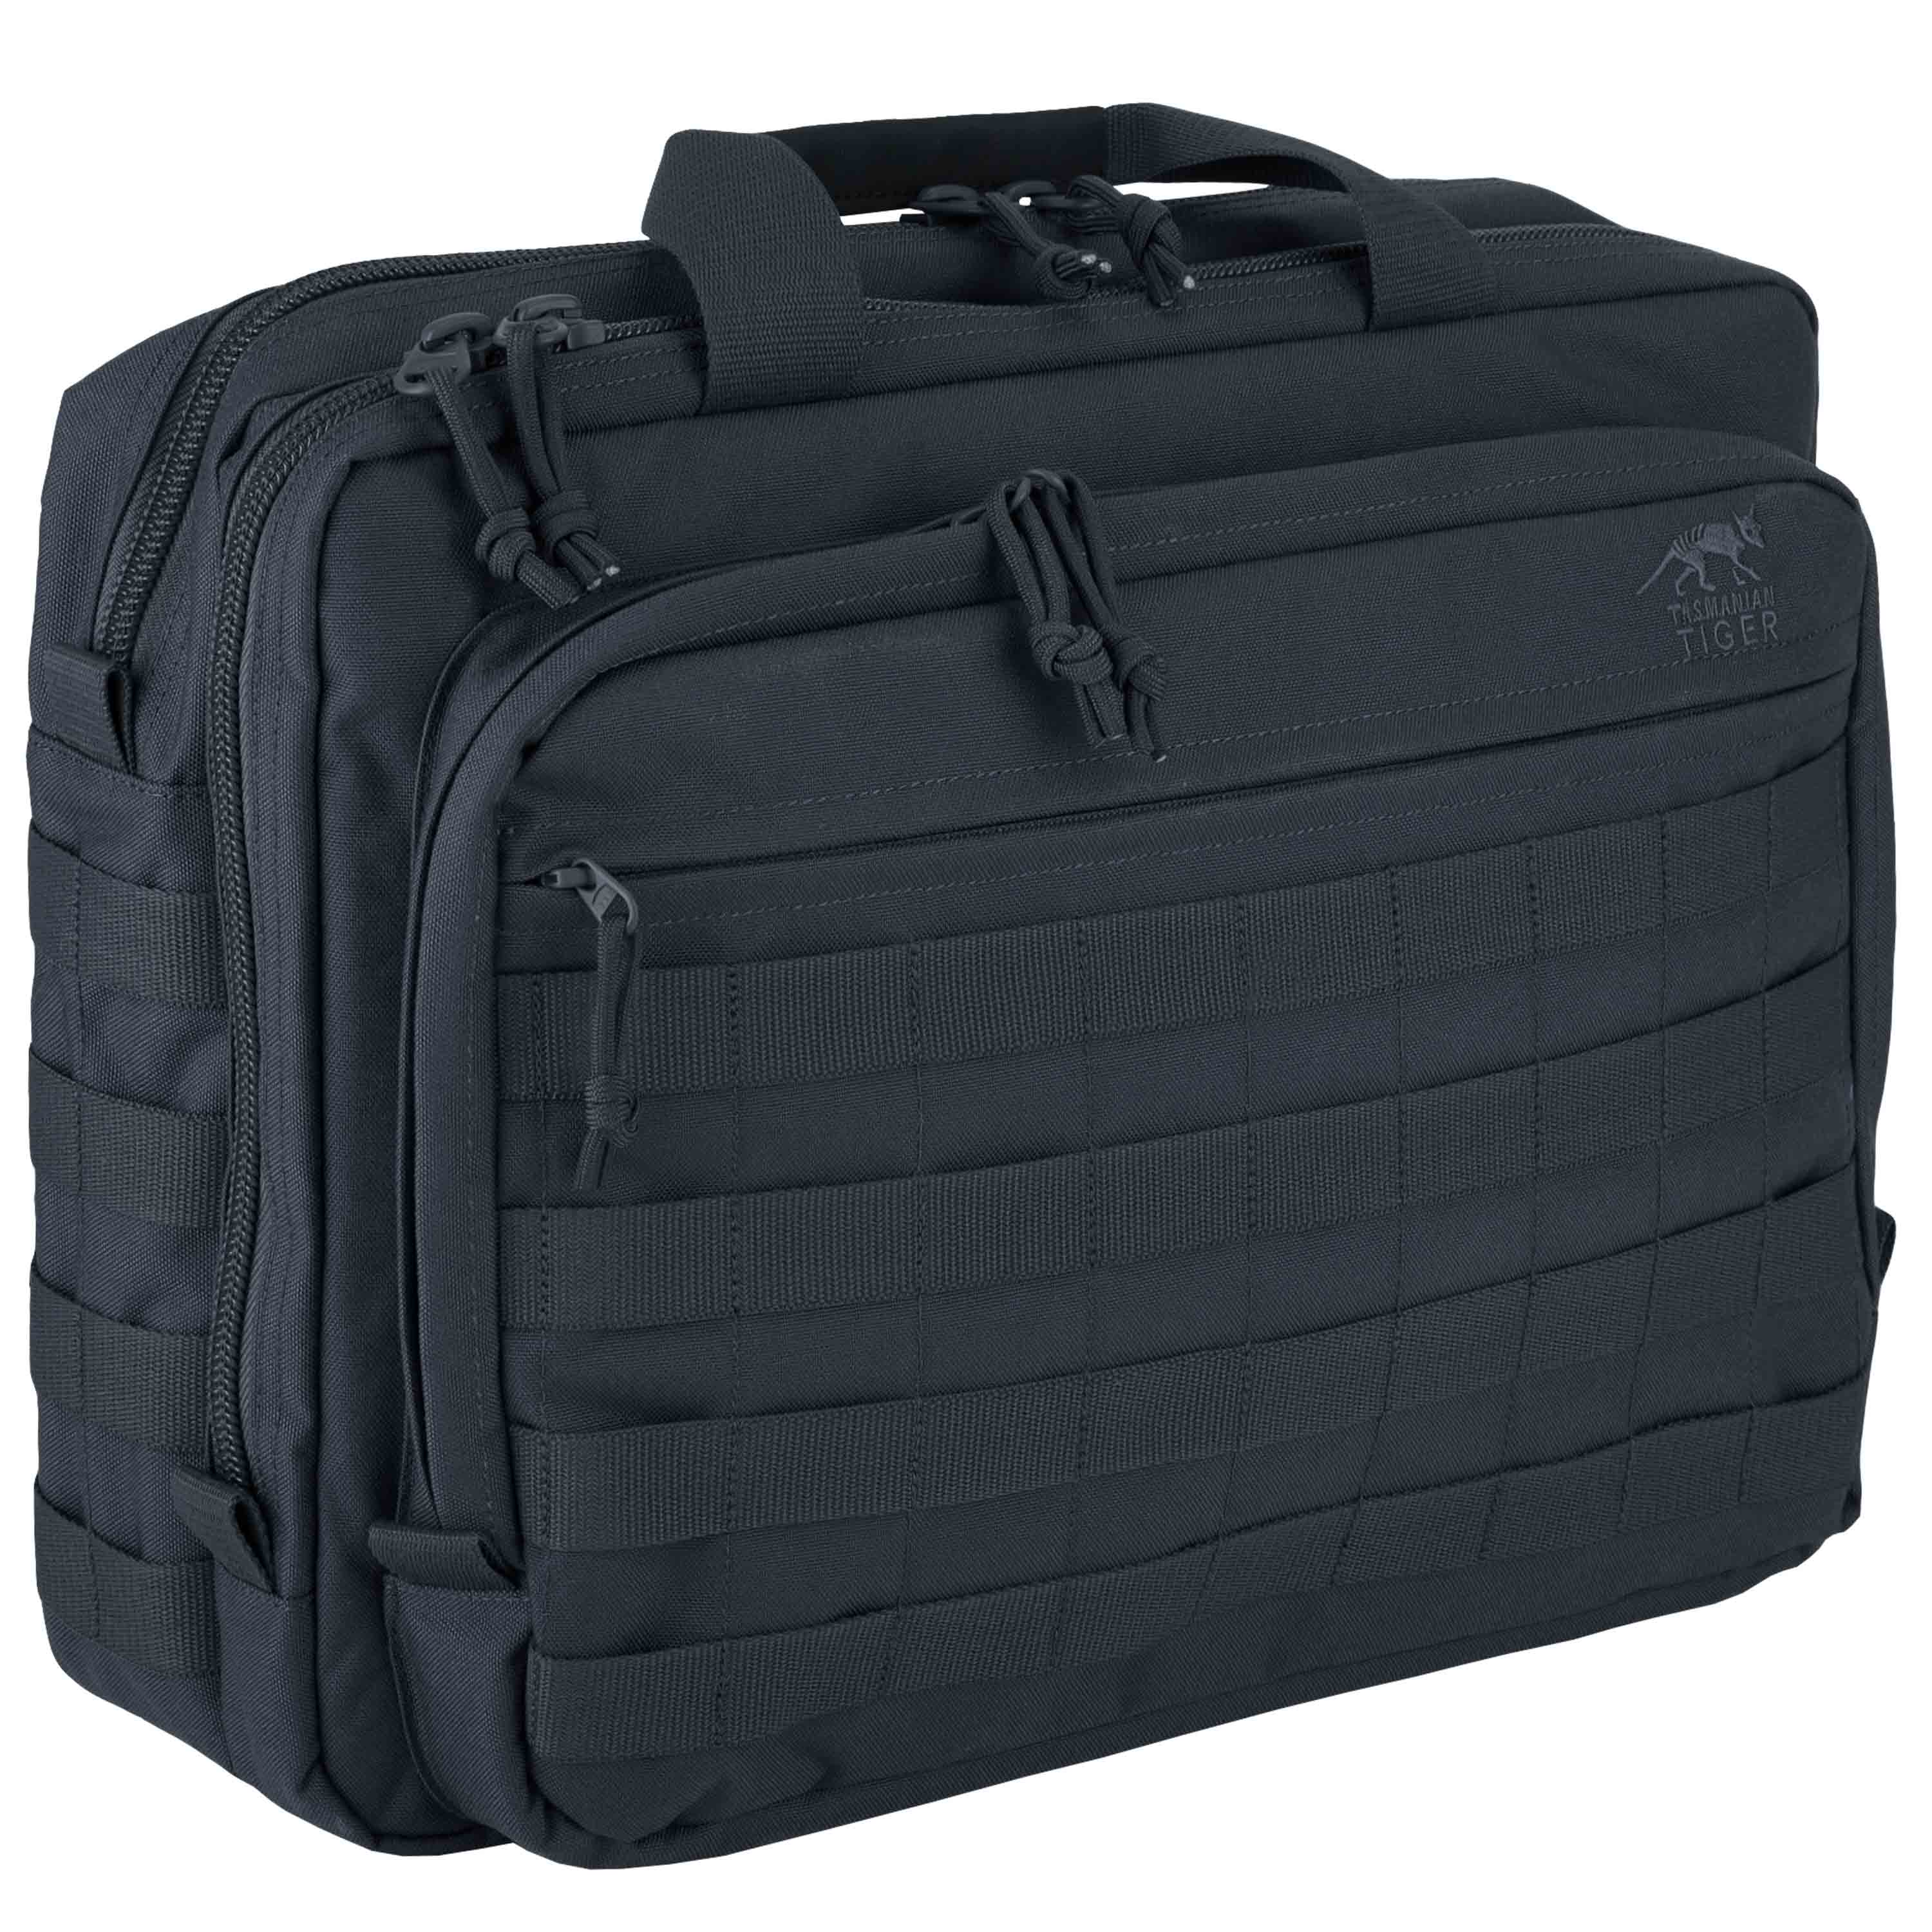 Tragetasche TT Document Bag schwarz